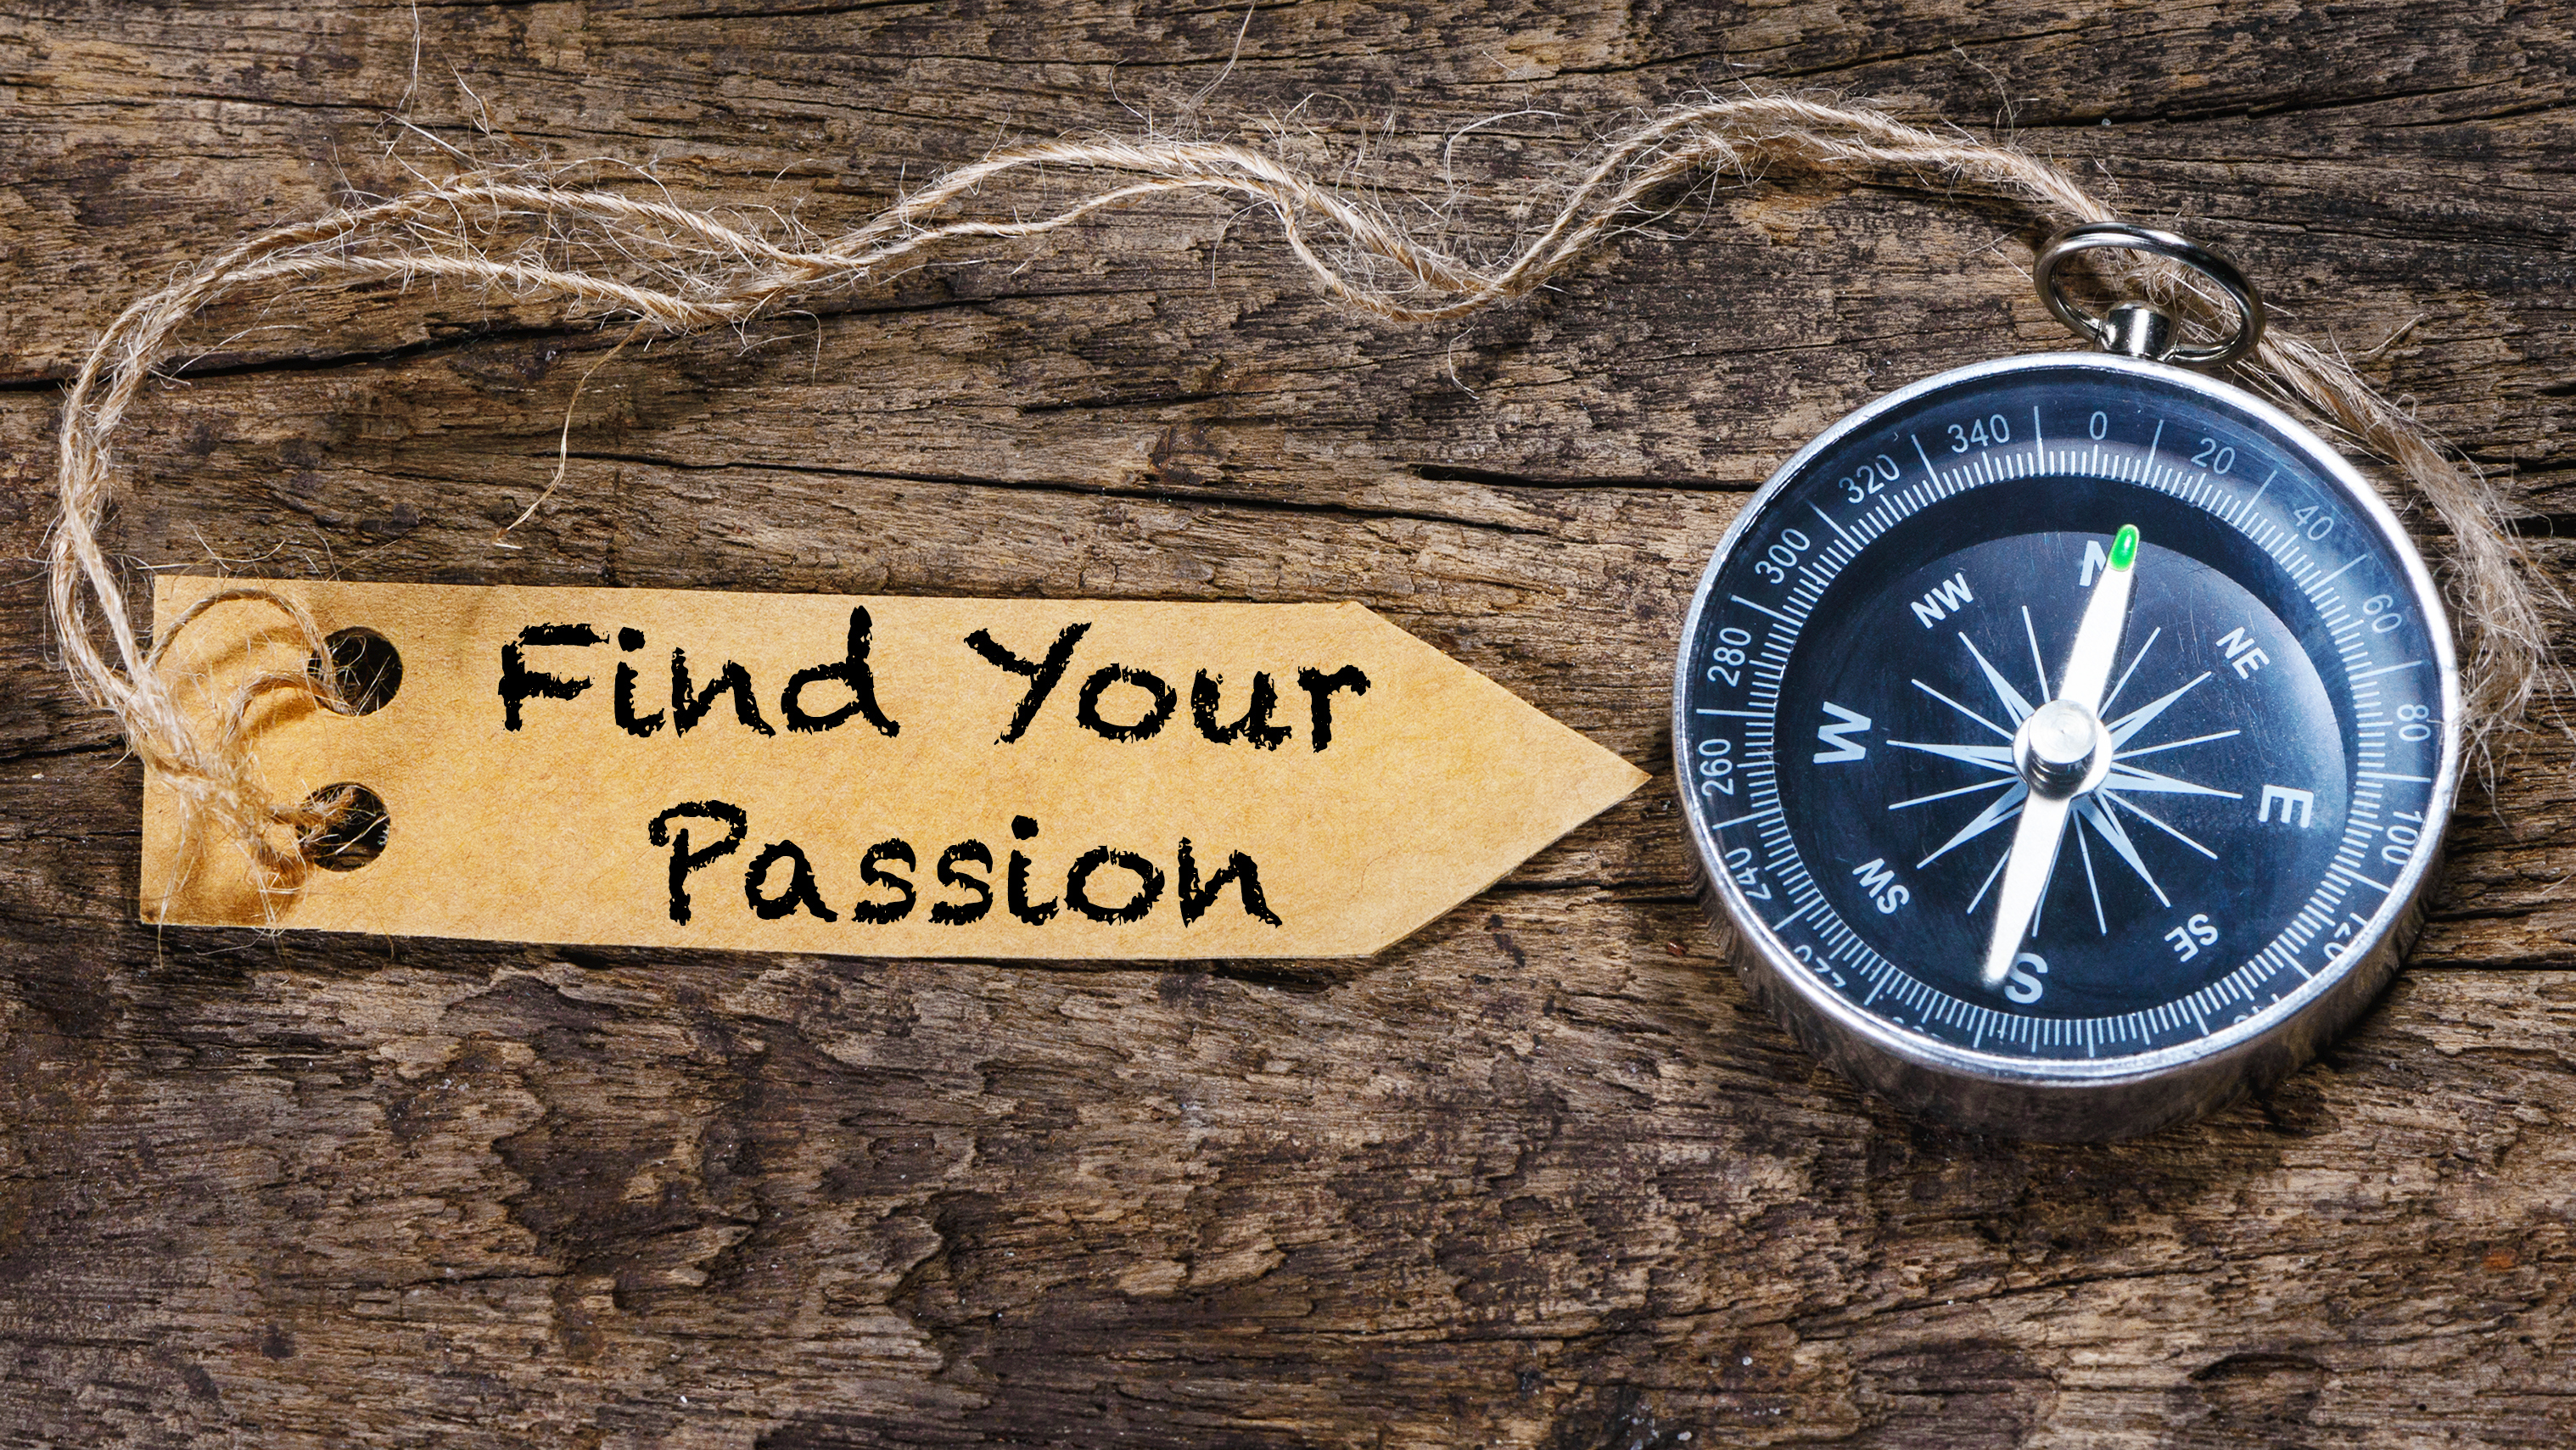 New Research On How Students Find Their Passions Raises